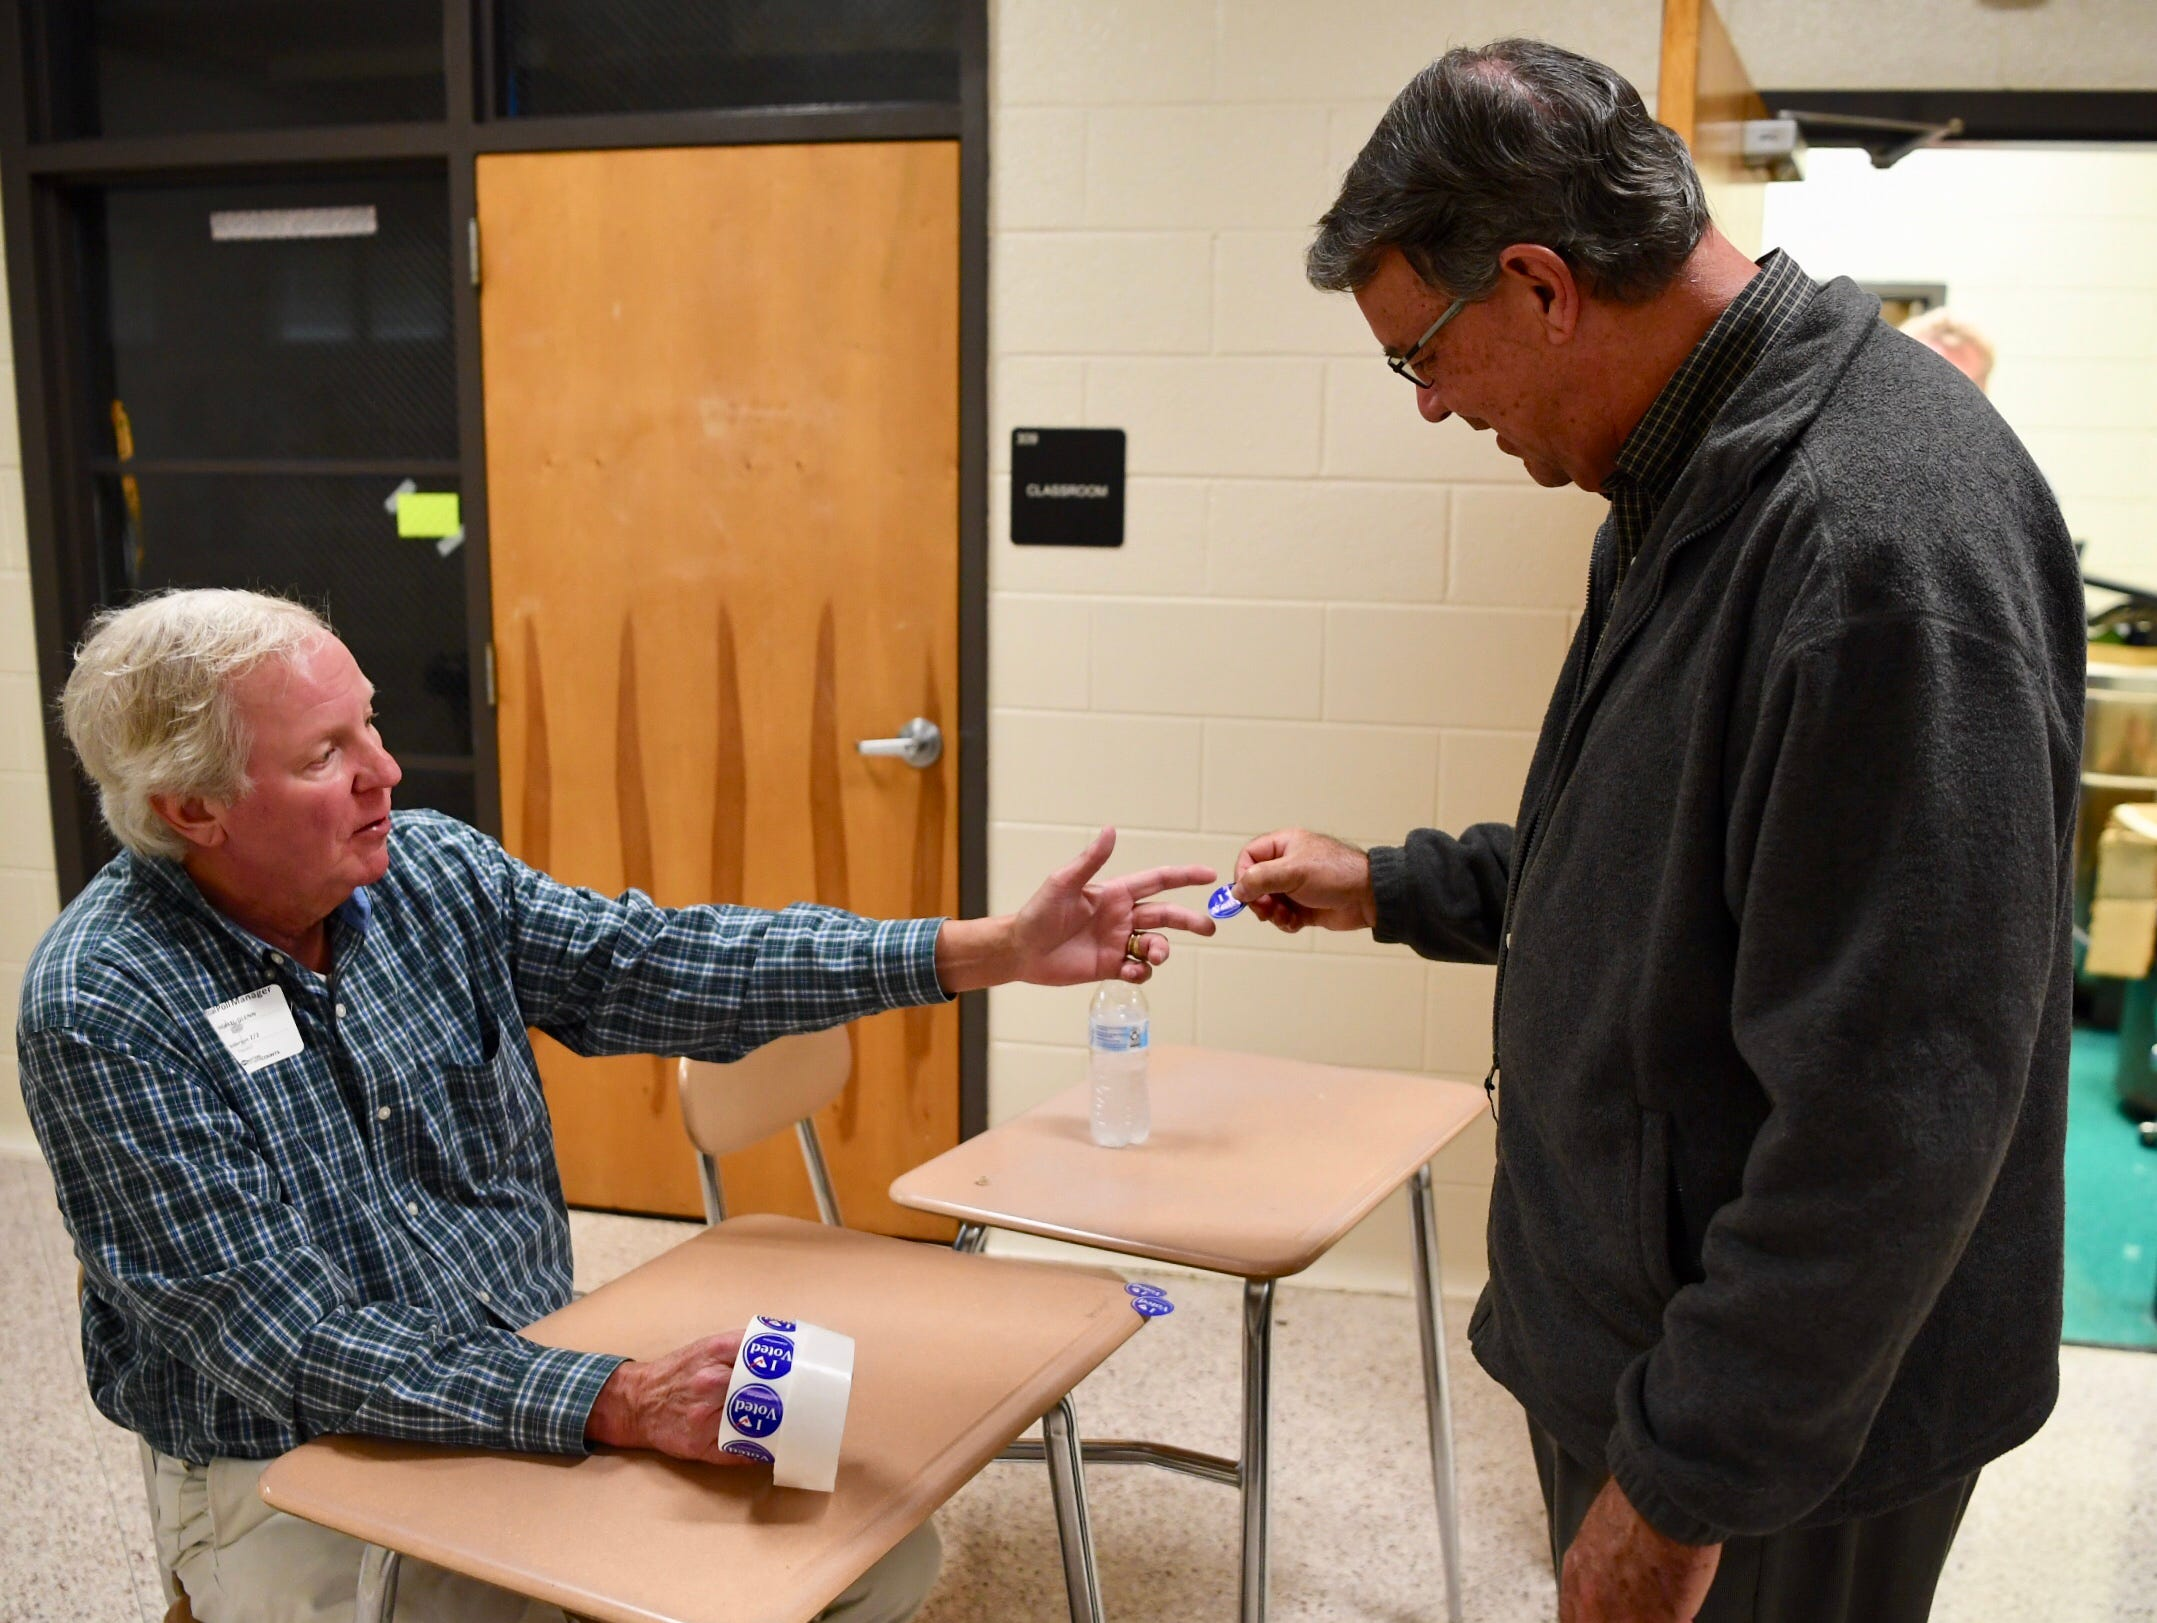 The Rev. Jim Thomason of First Baptist Church in Anderson gets a sticker from Mike Glenn a poll manager at McCants Middle School in Anderson.